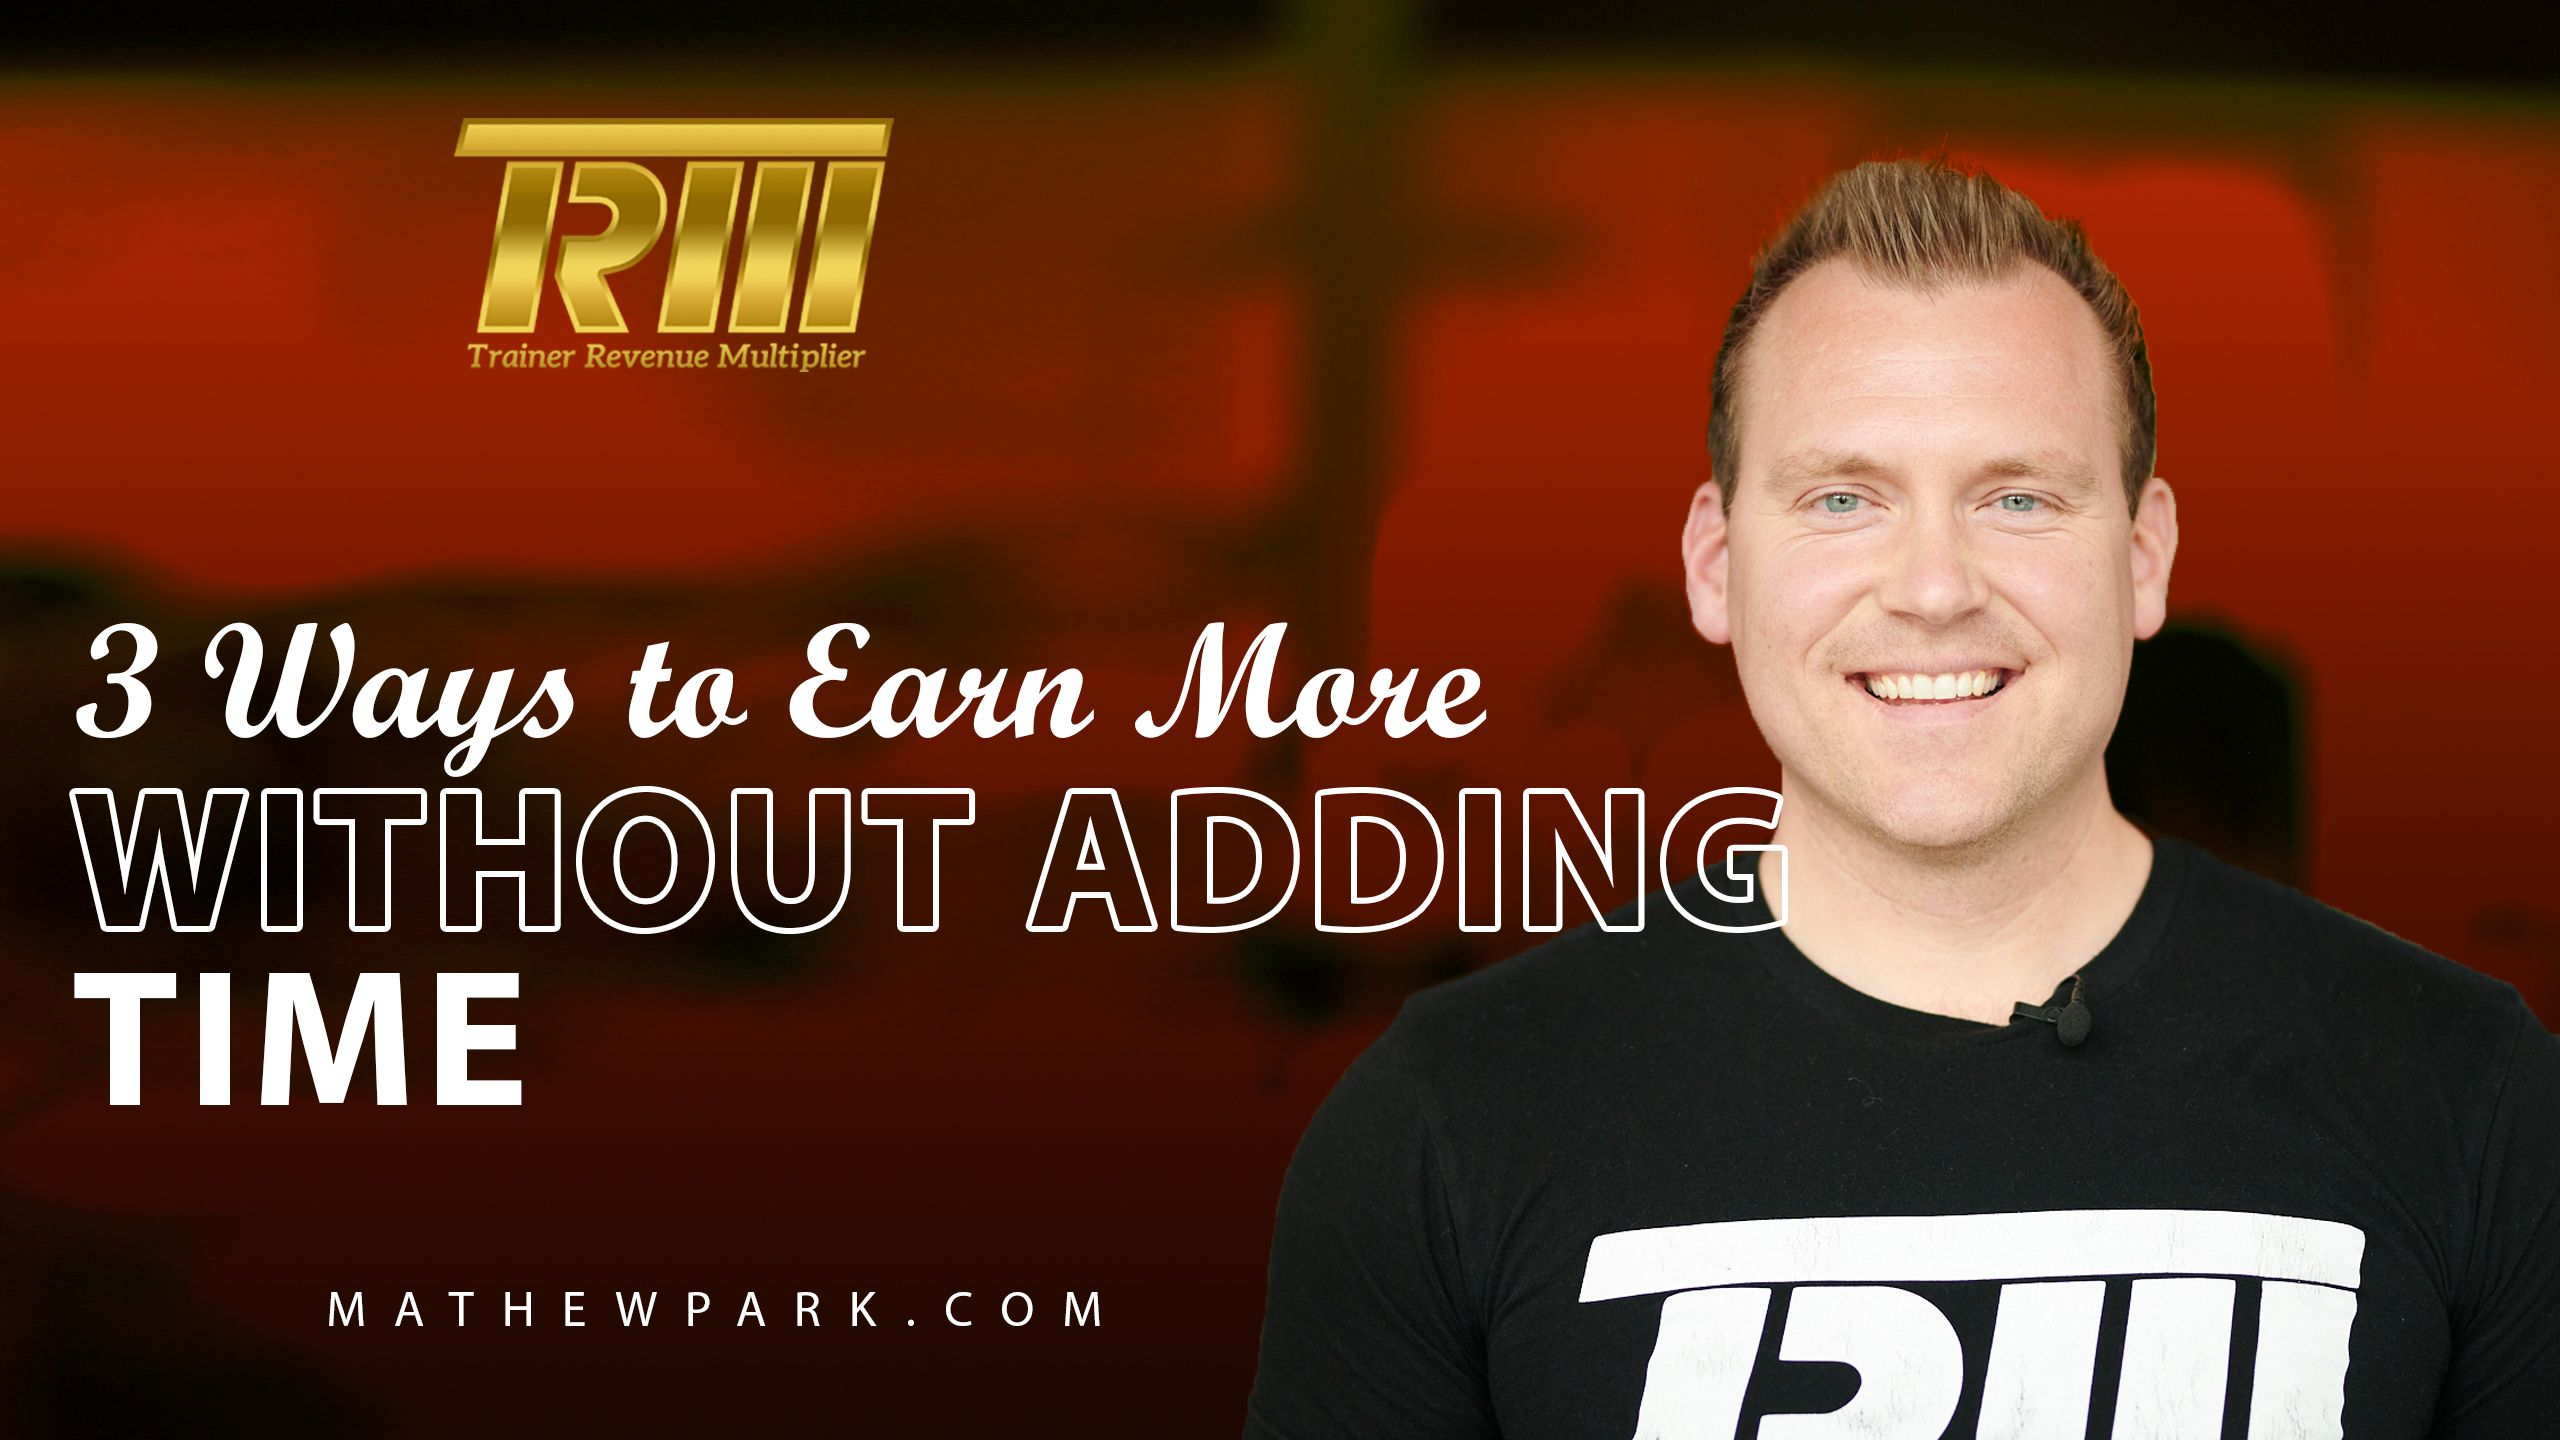 3-Ways-to-Earn-More-Without-Adding-Time